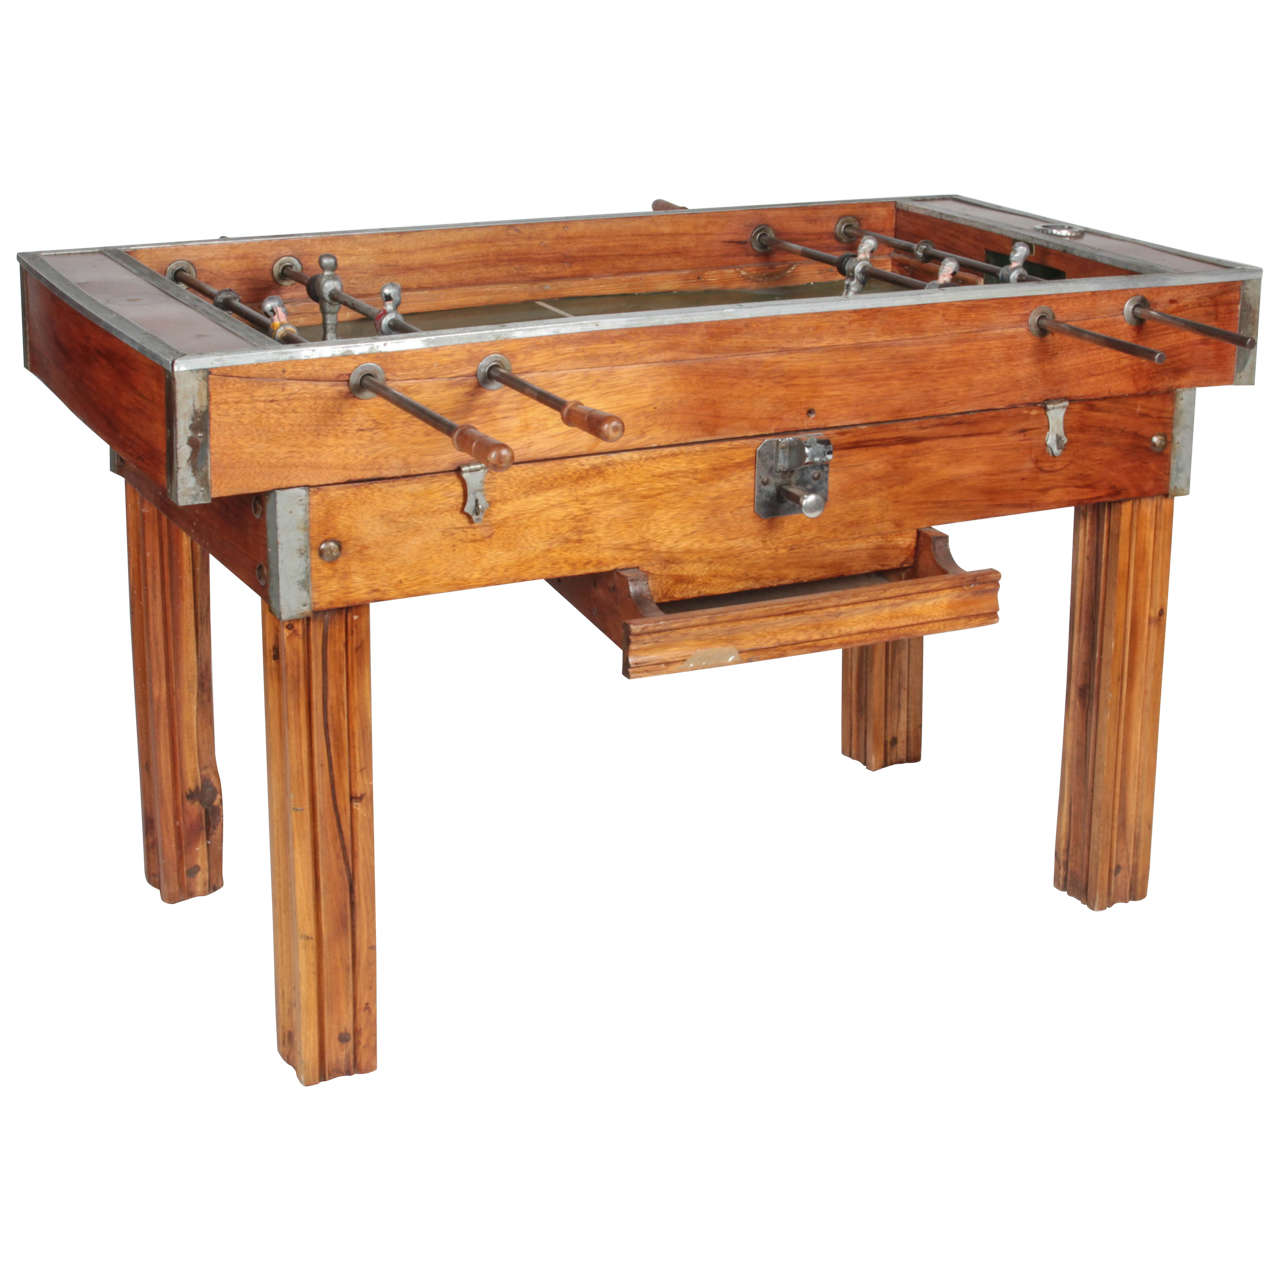 1950s Bilhares Triunfo Two Person Coin Operated Foosball